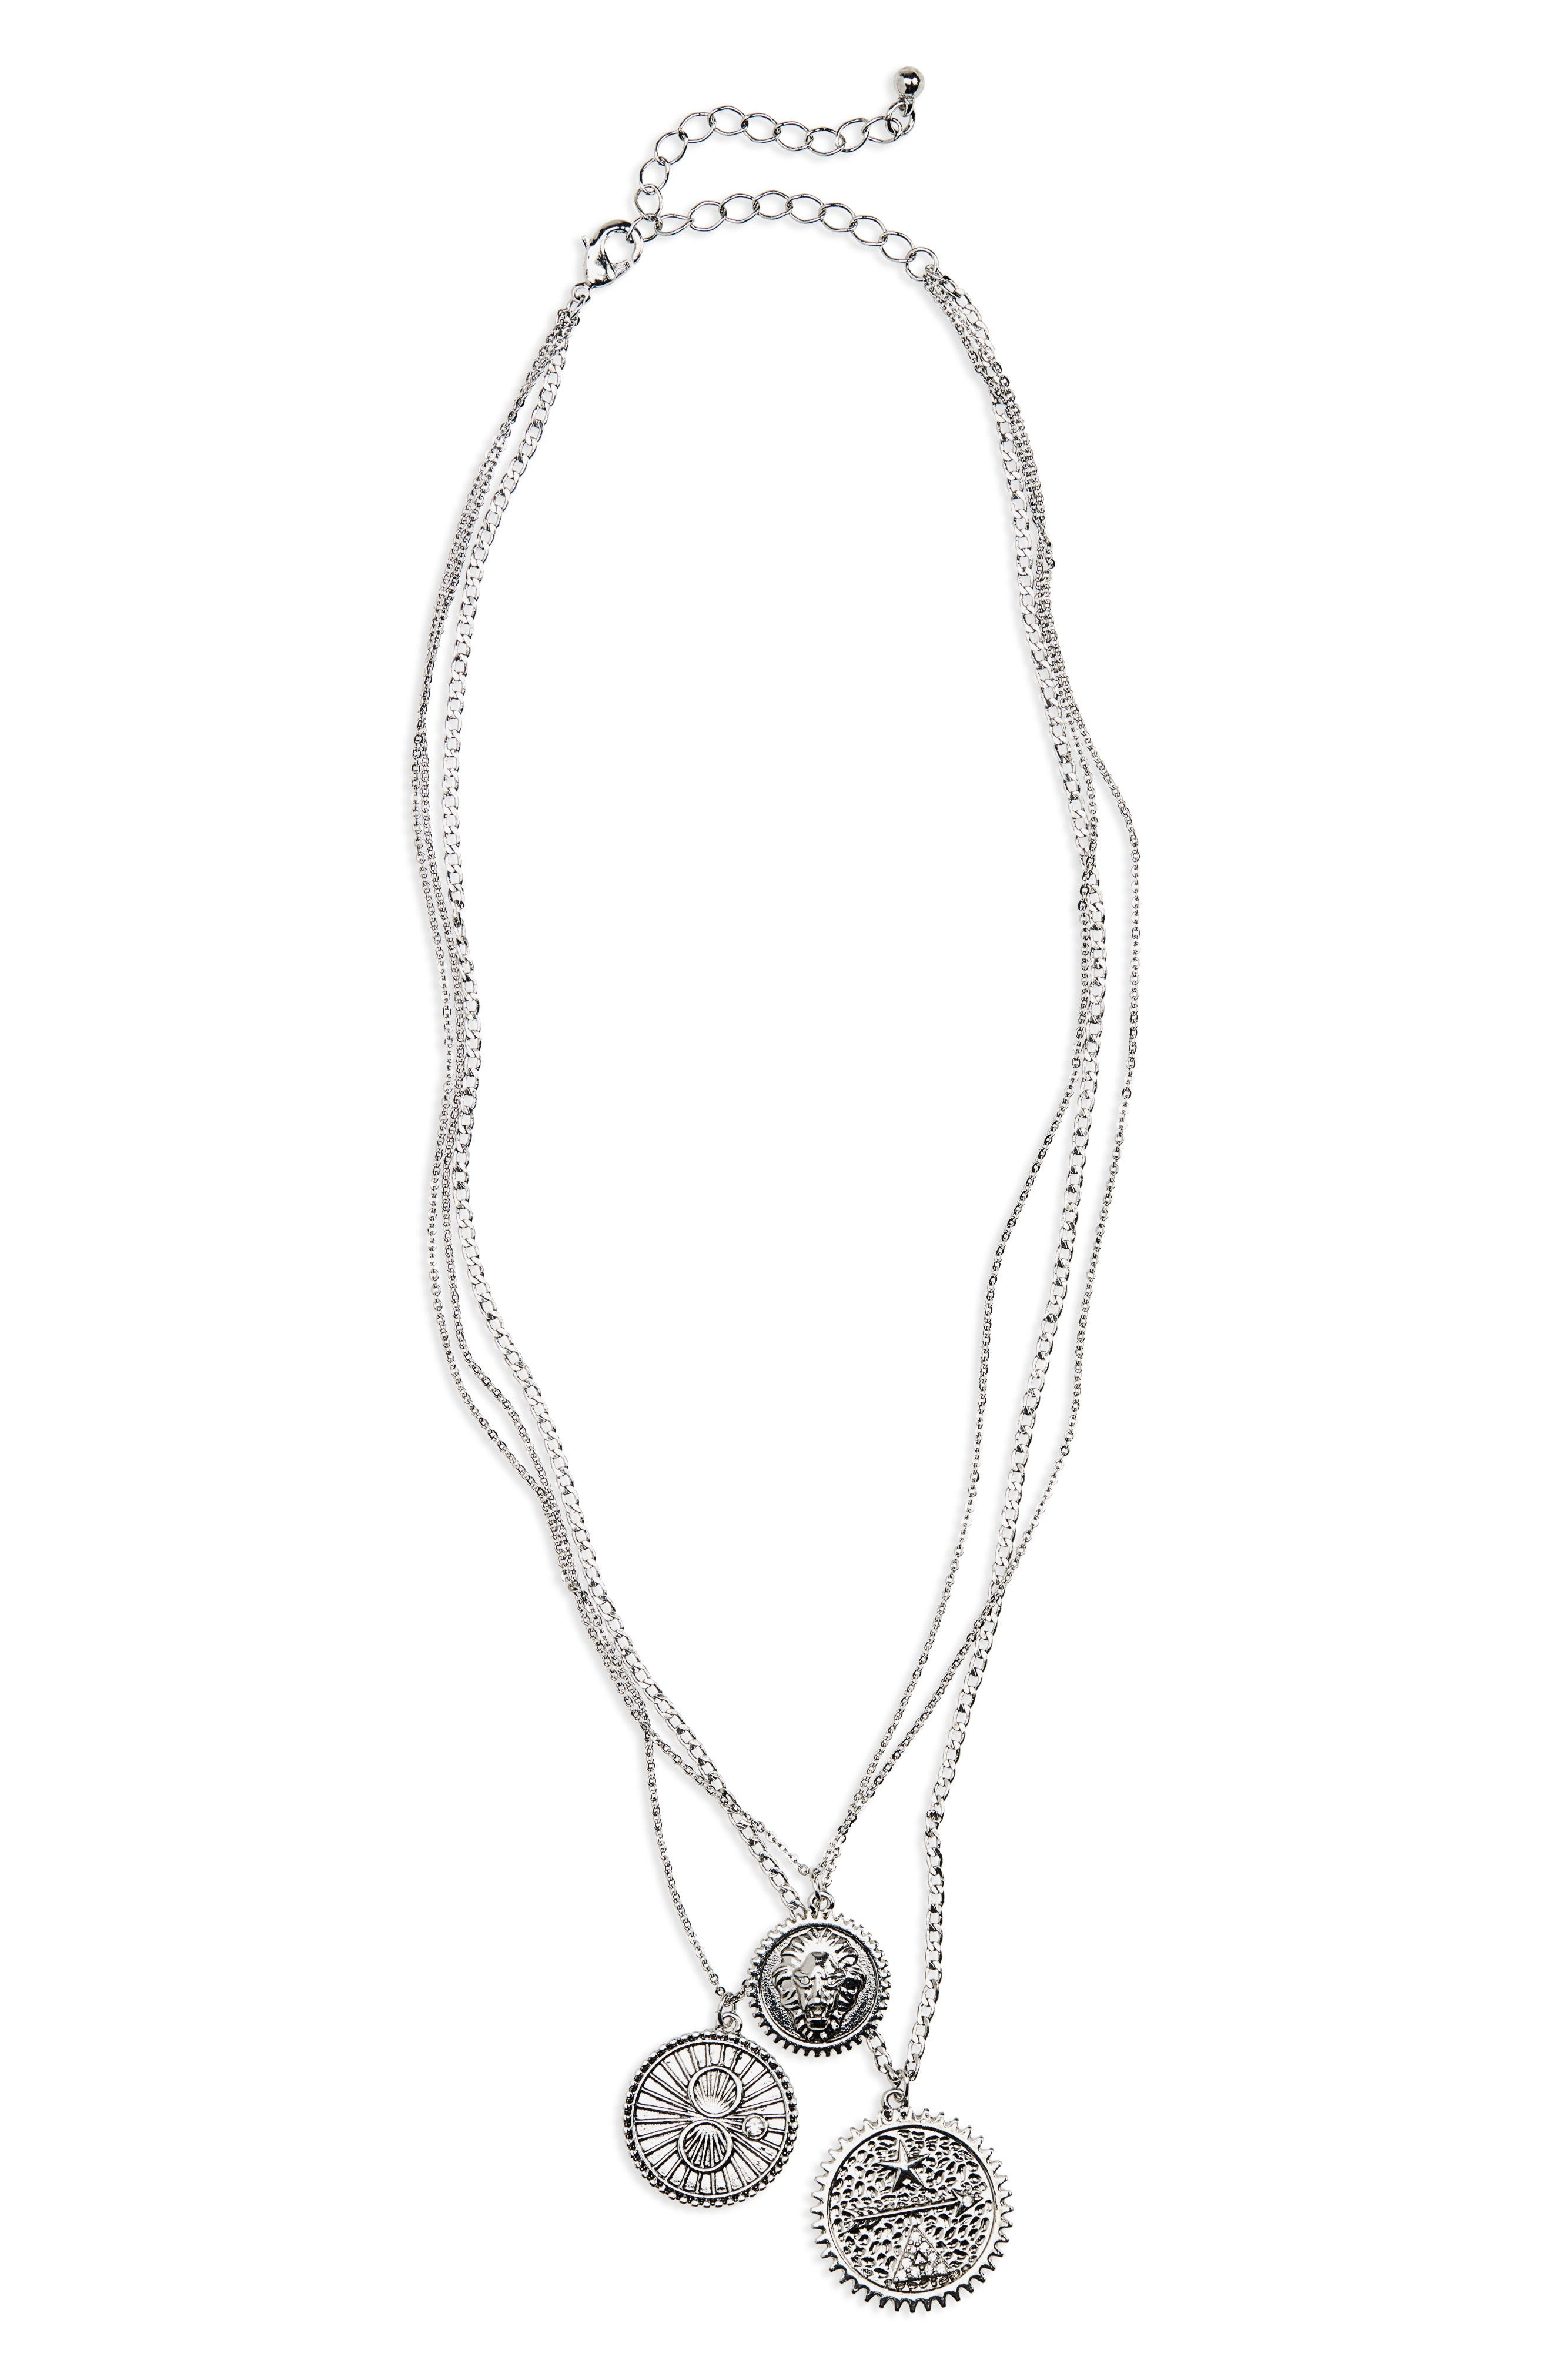 Layered Pendant Necklace,                             Main thumbnail 1, color,                             SILVER/ CRYSTAL